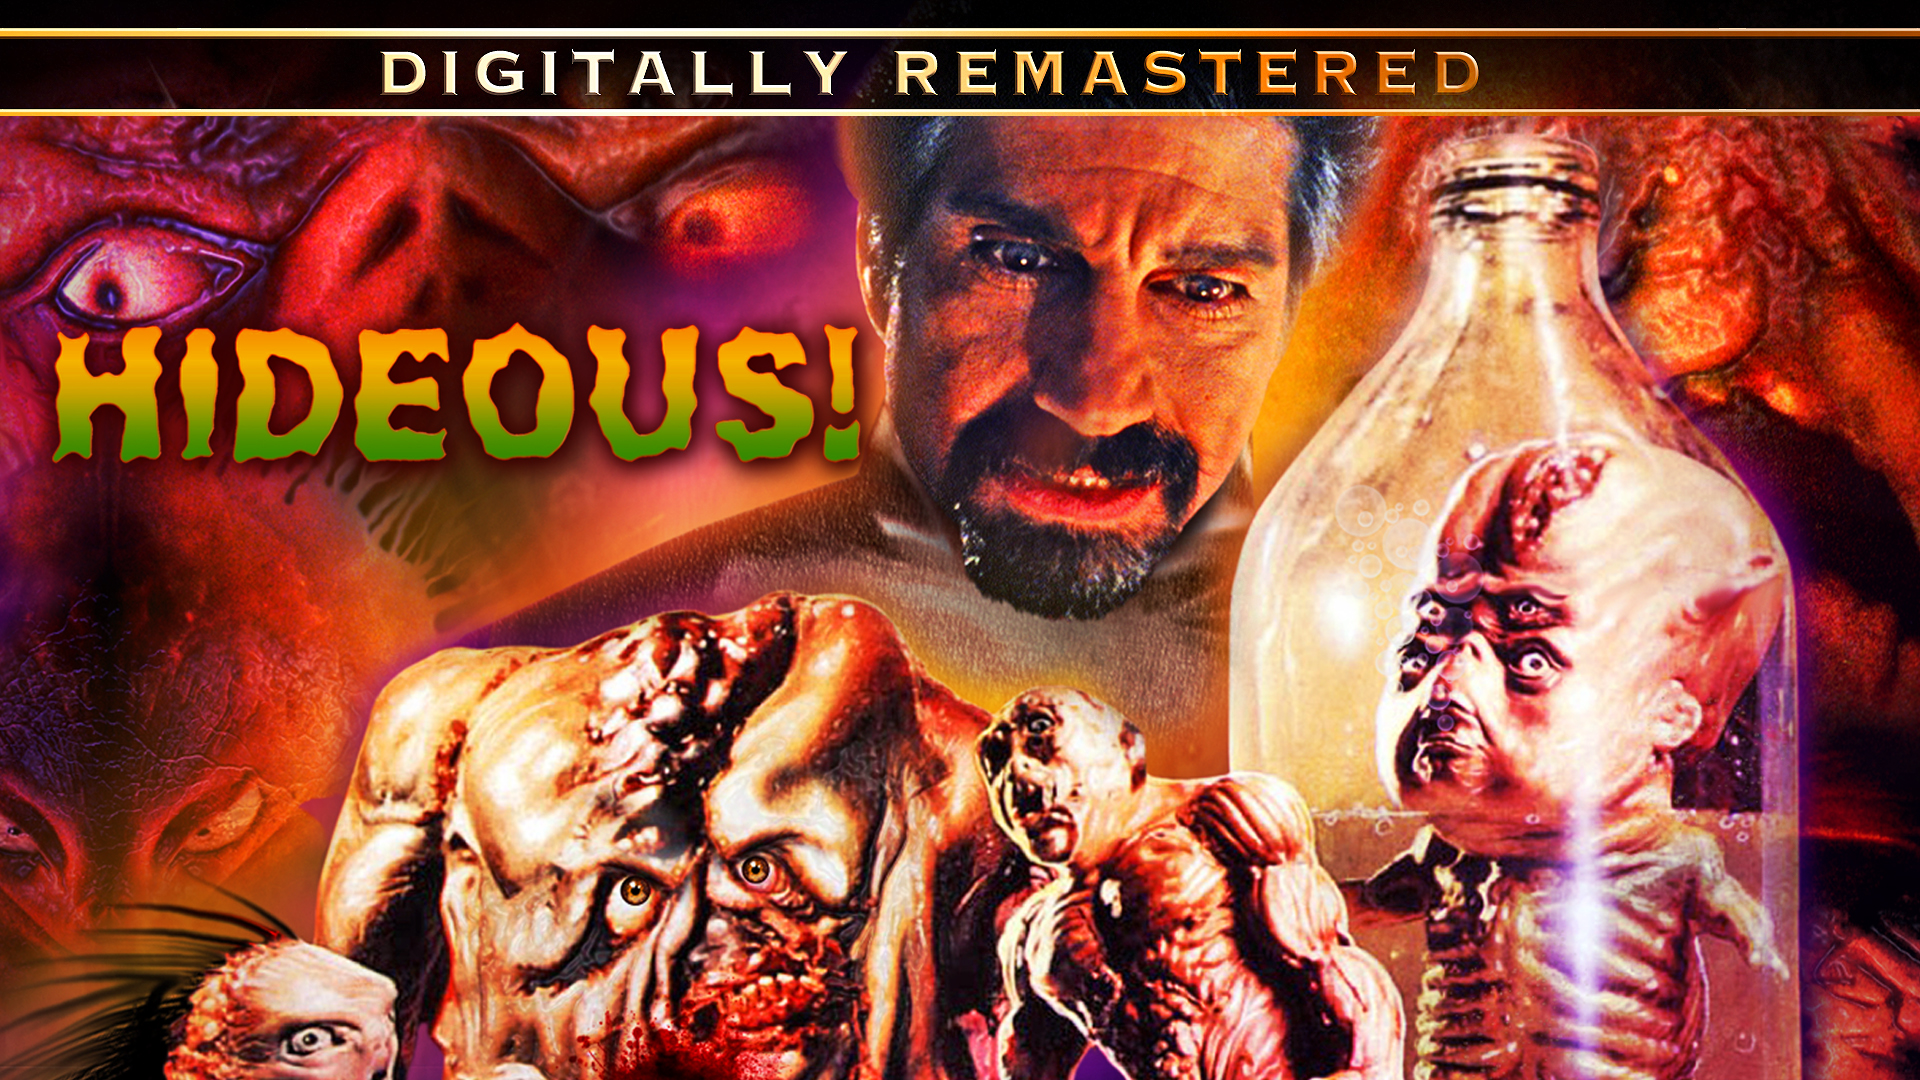 Hideous! REMASTERED